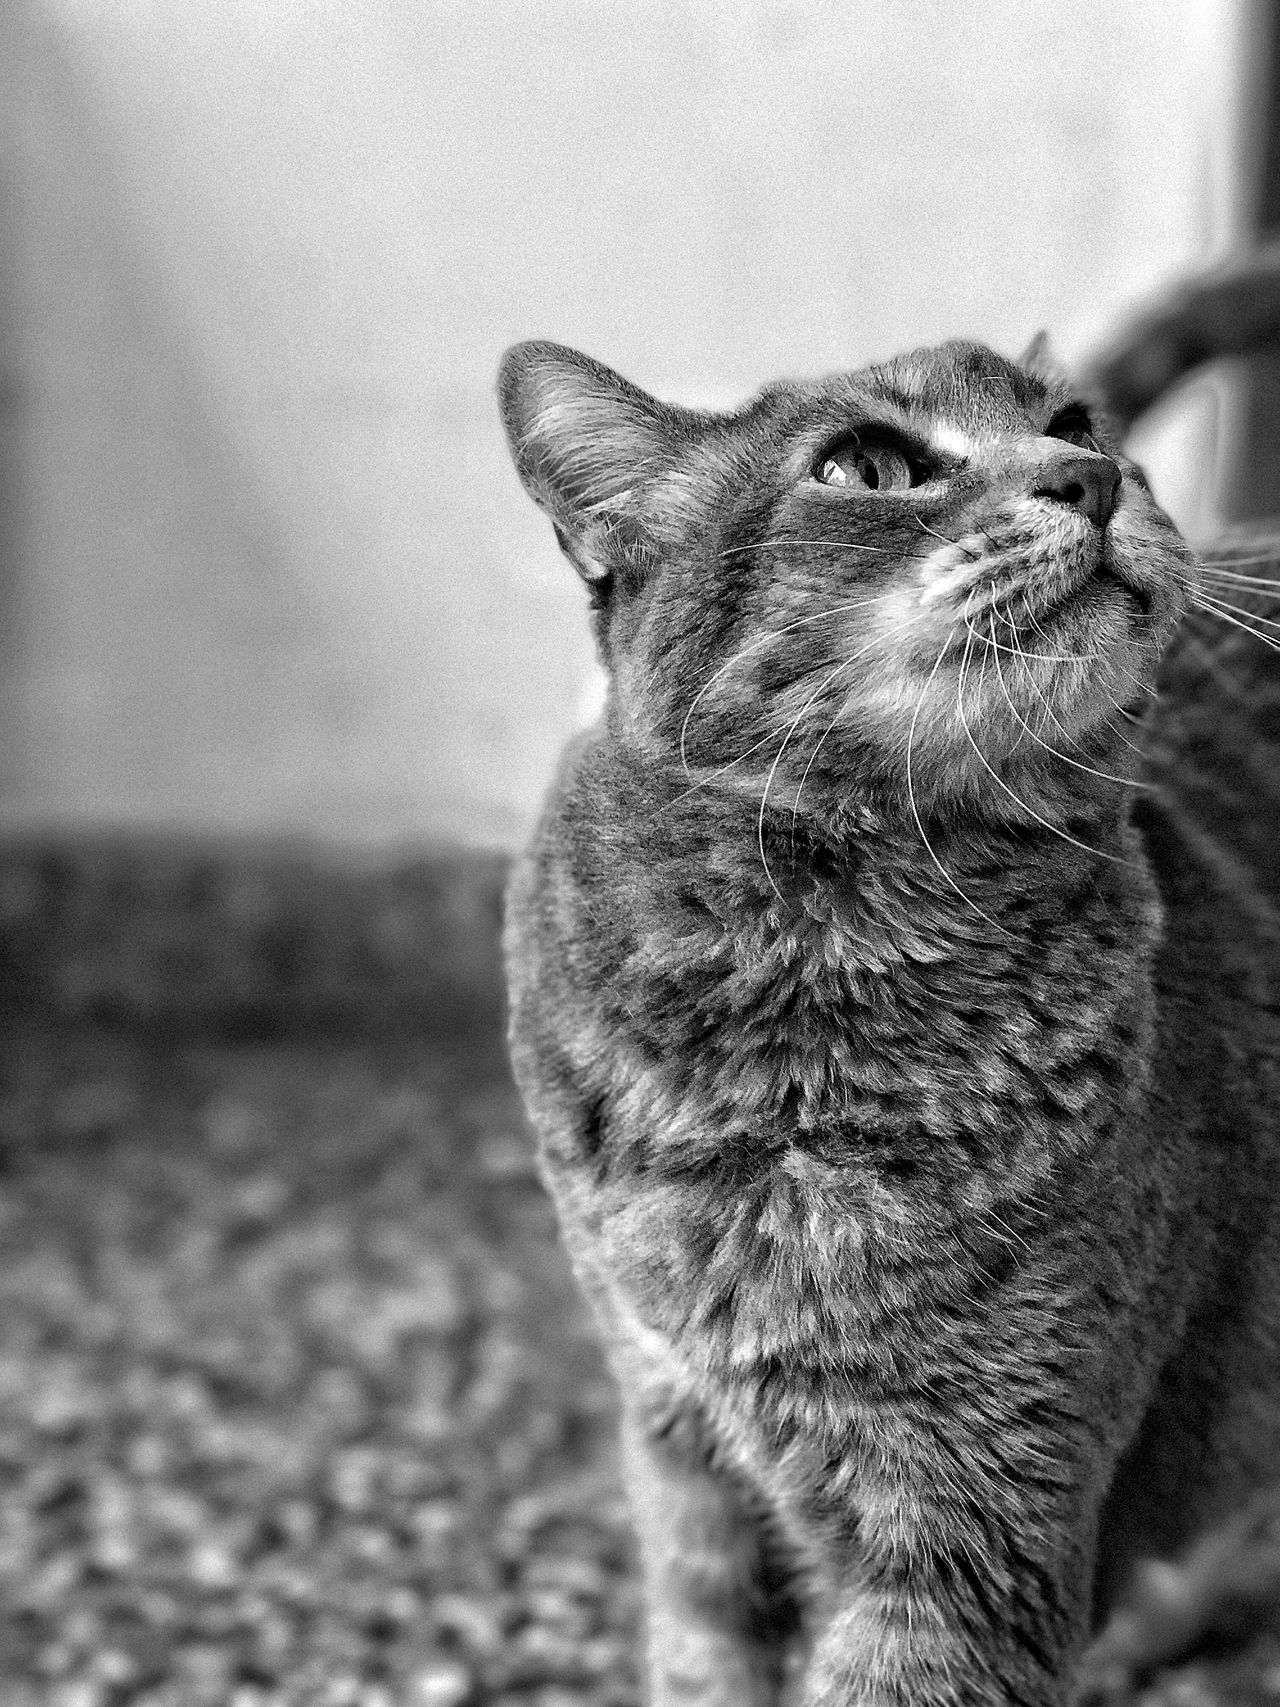 One Animal Domestic Animals Animal Themes Pets Mammal Domestic Cat Close-up Feline No People Outdoors Day Nature Black And White Blackandwhite Black & White Blsckandwhite Black And White Photography